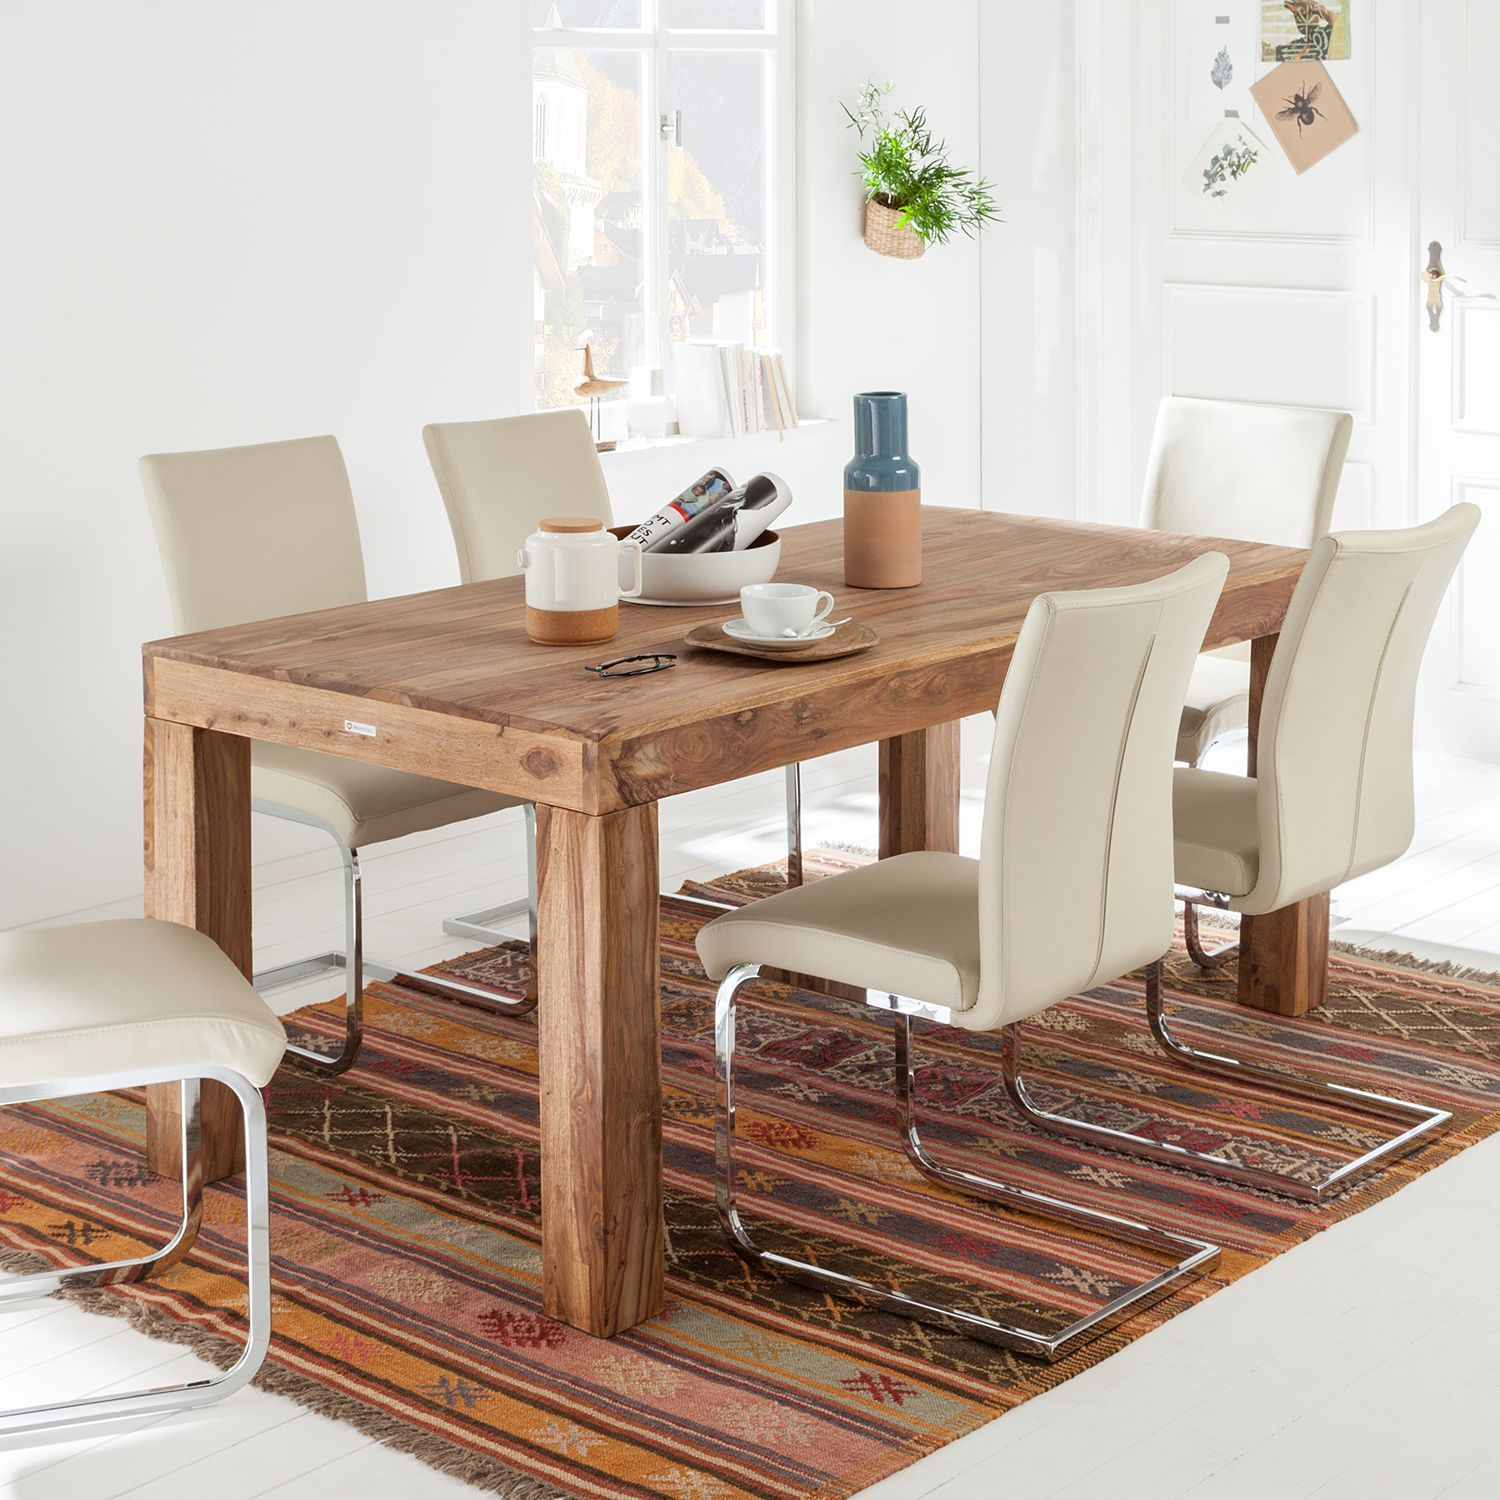 home24 Esstisch Bombay II | Dining table, Home decor, Home